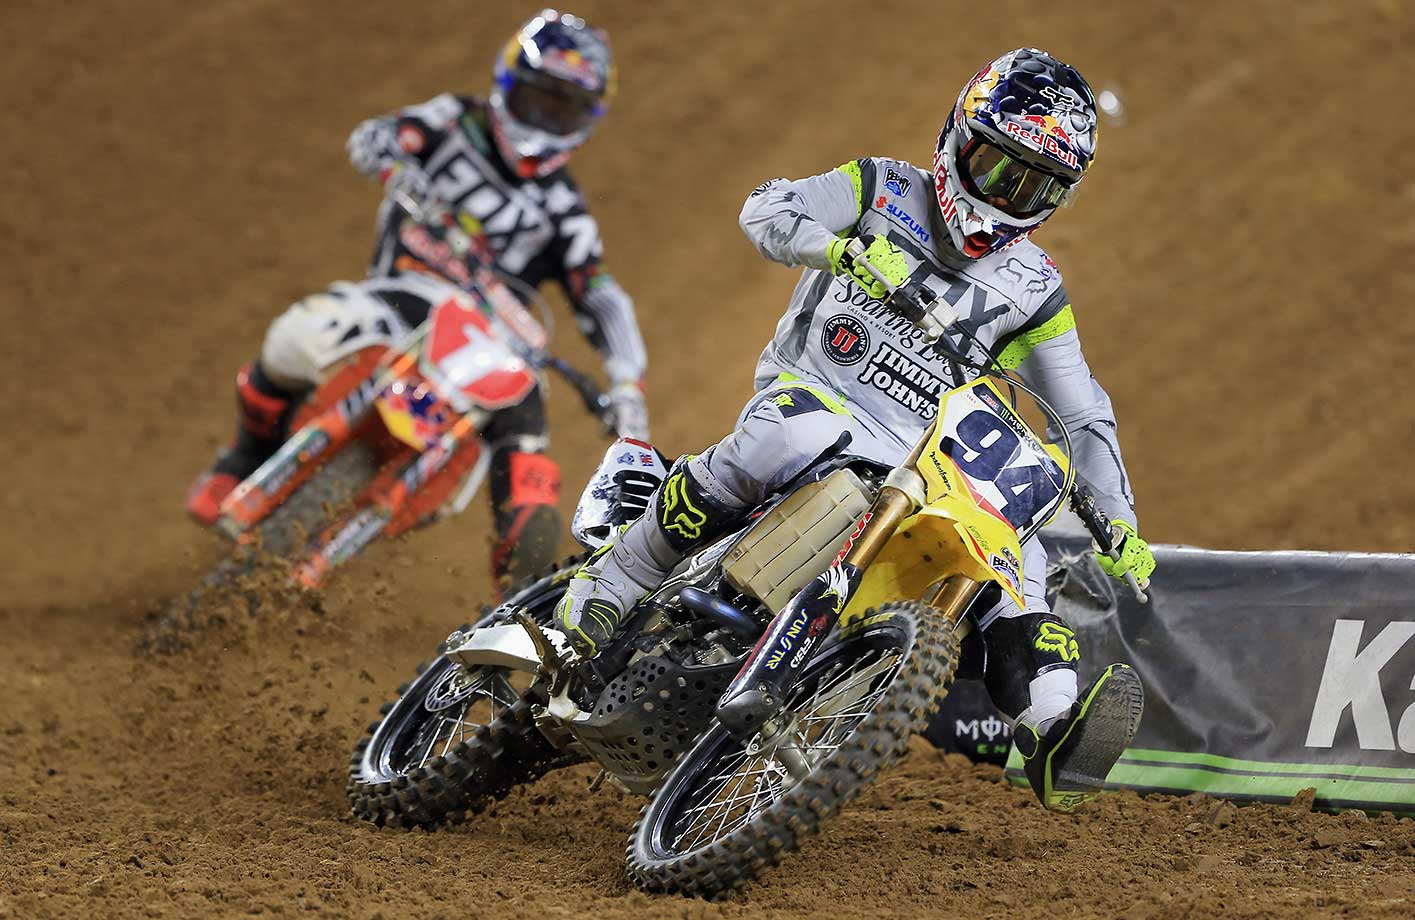 Ken Roczen leads Ryan Dungey into a corner during the 450SX Main during the Monster Energy AMA Supercross in Arlington, Texas.